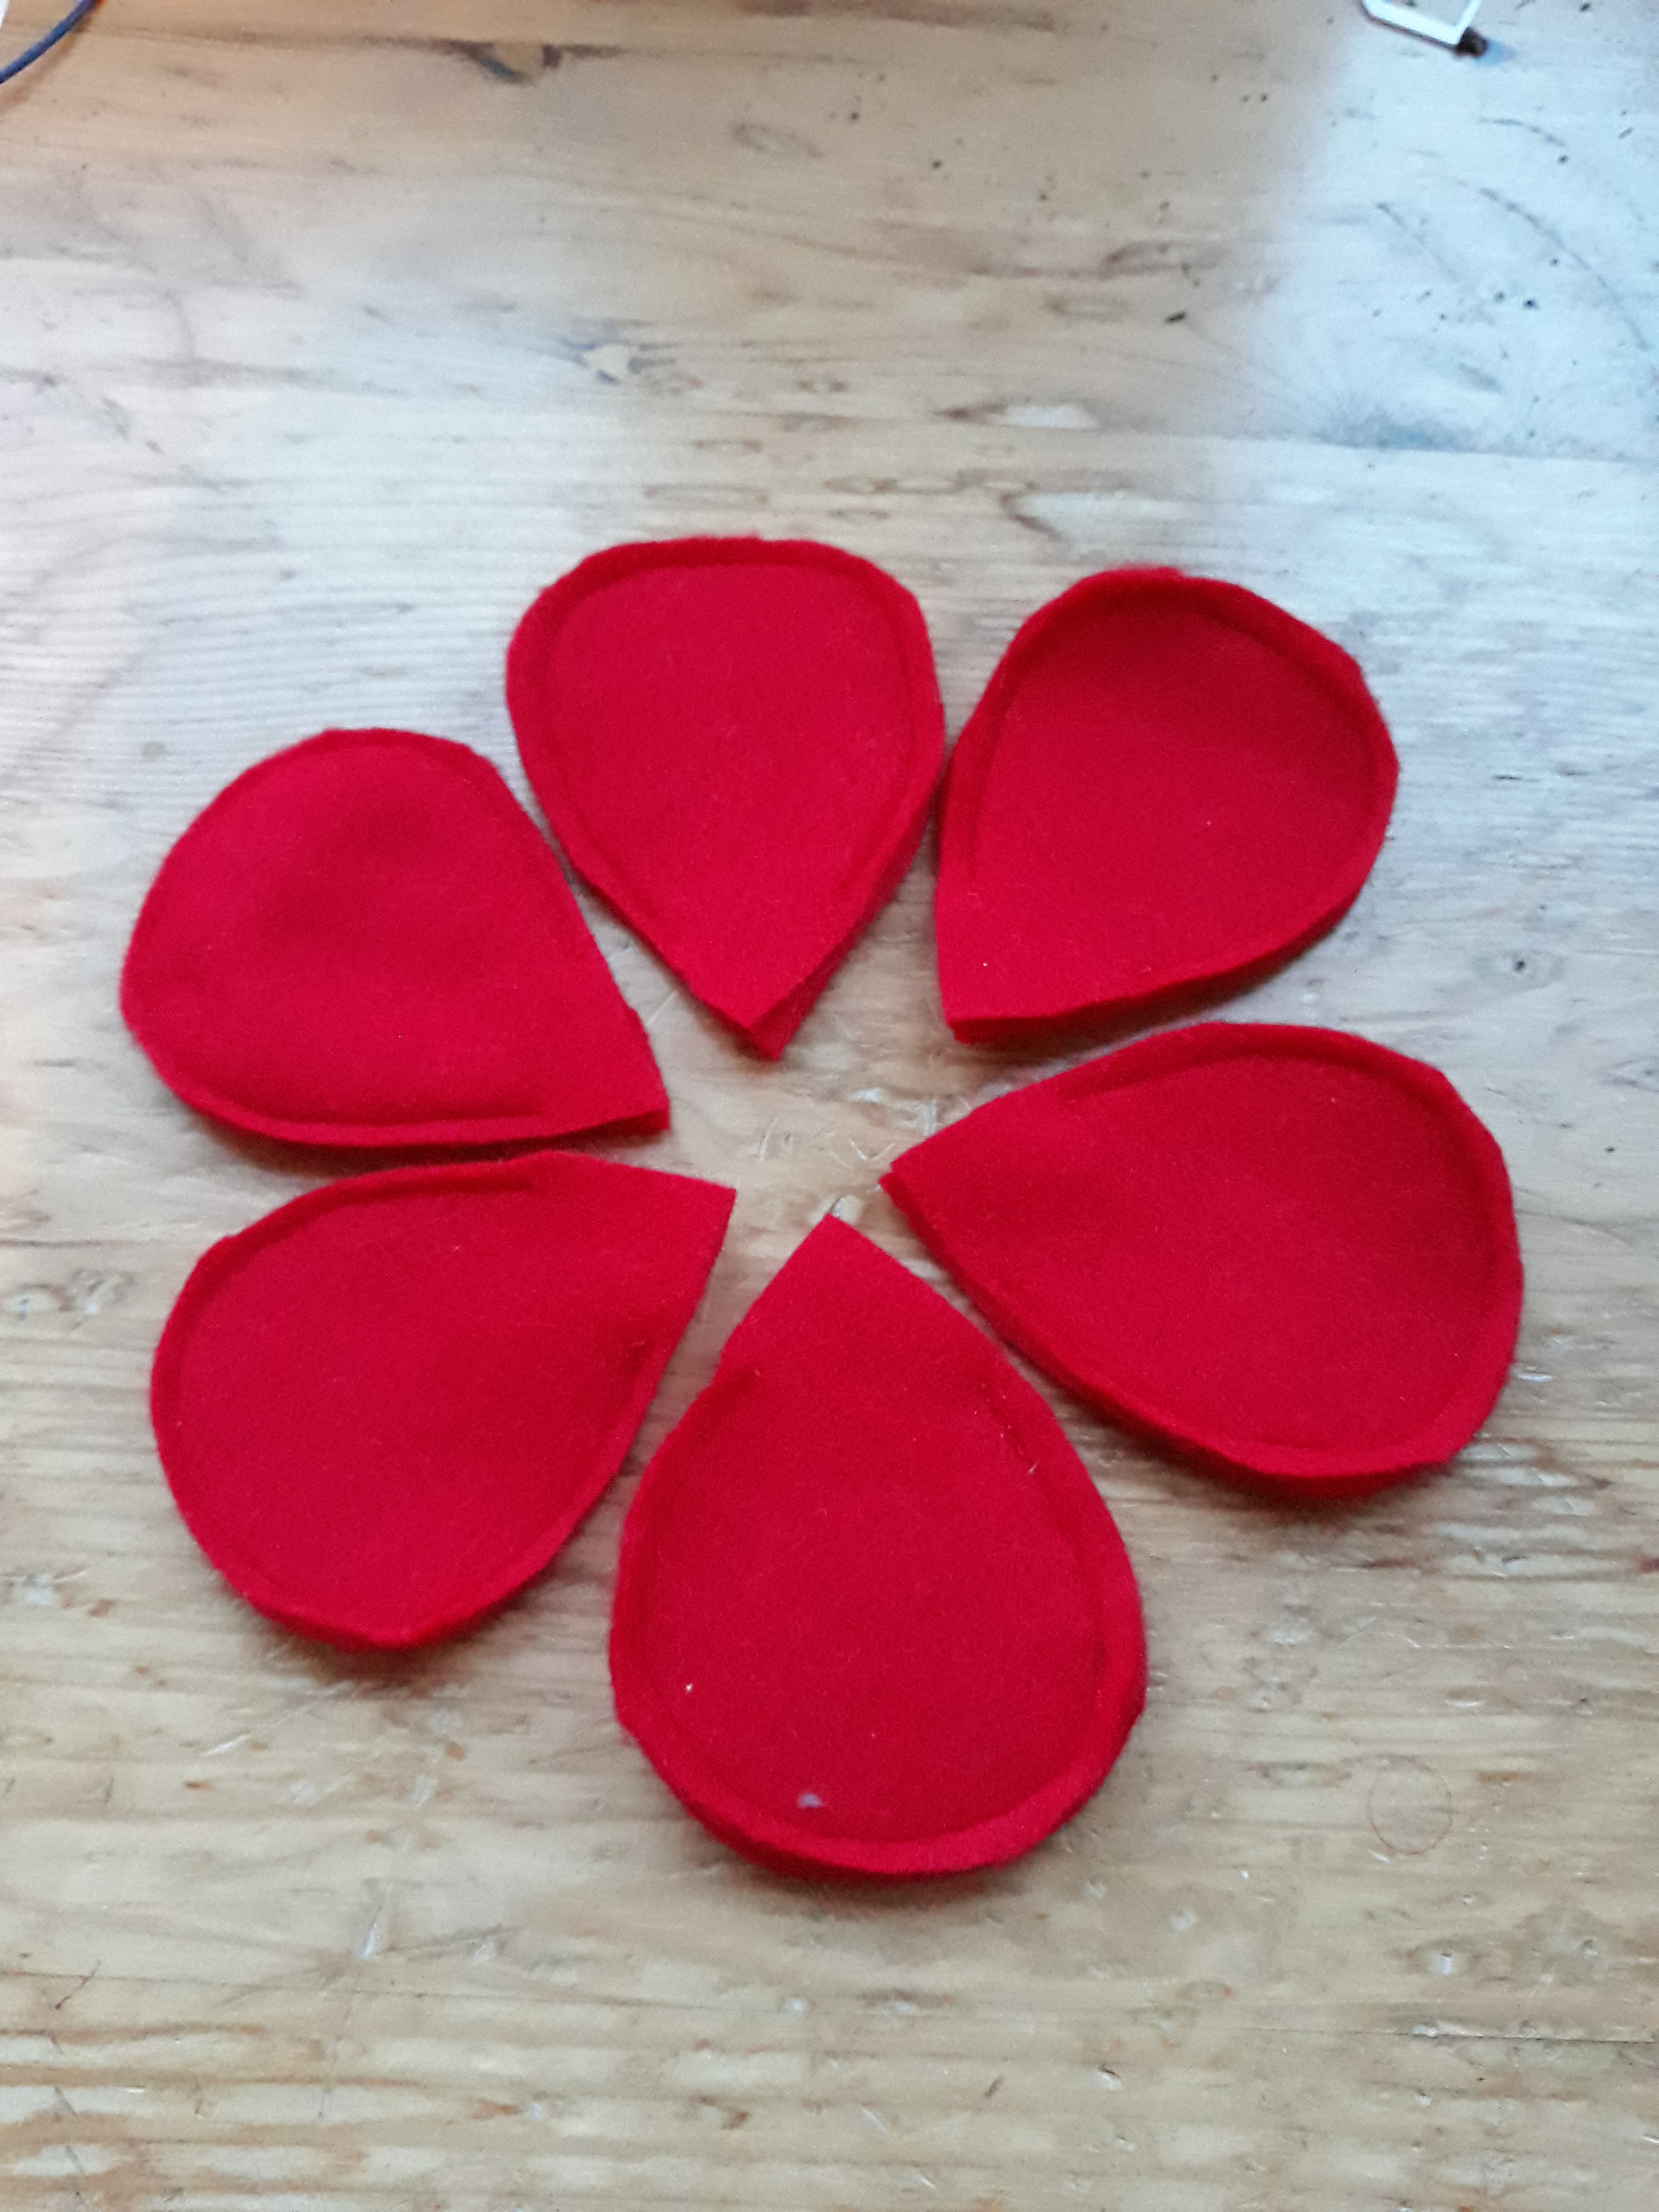 Picture of Sew the Petals Together